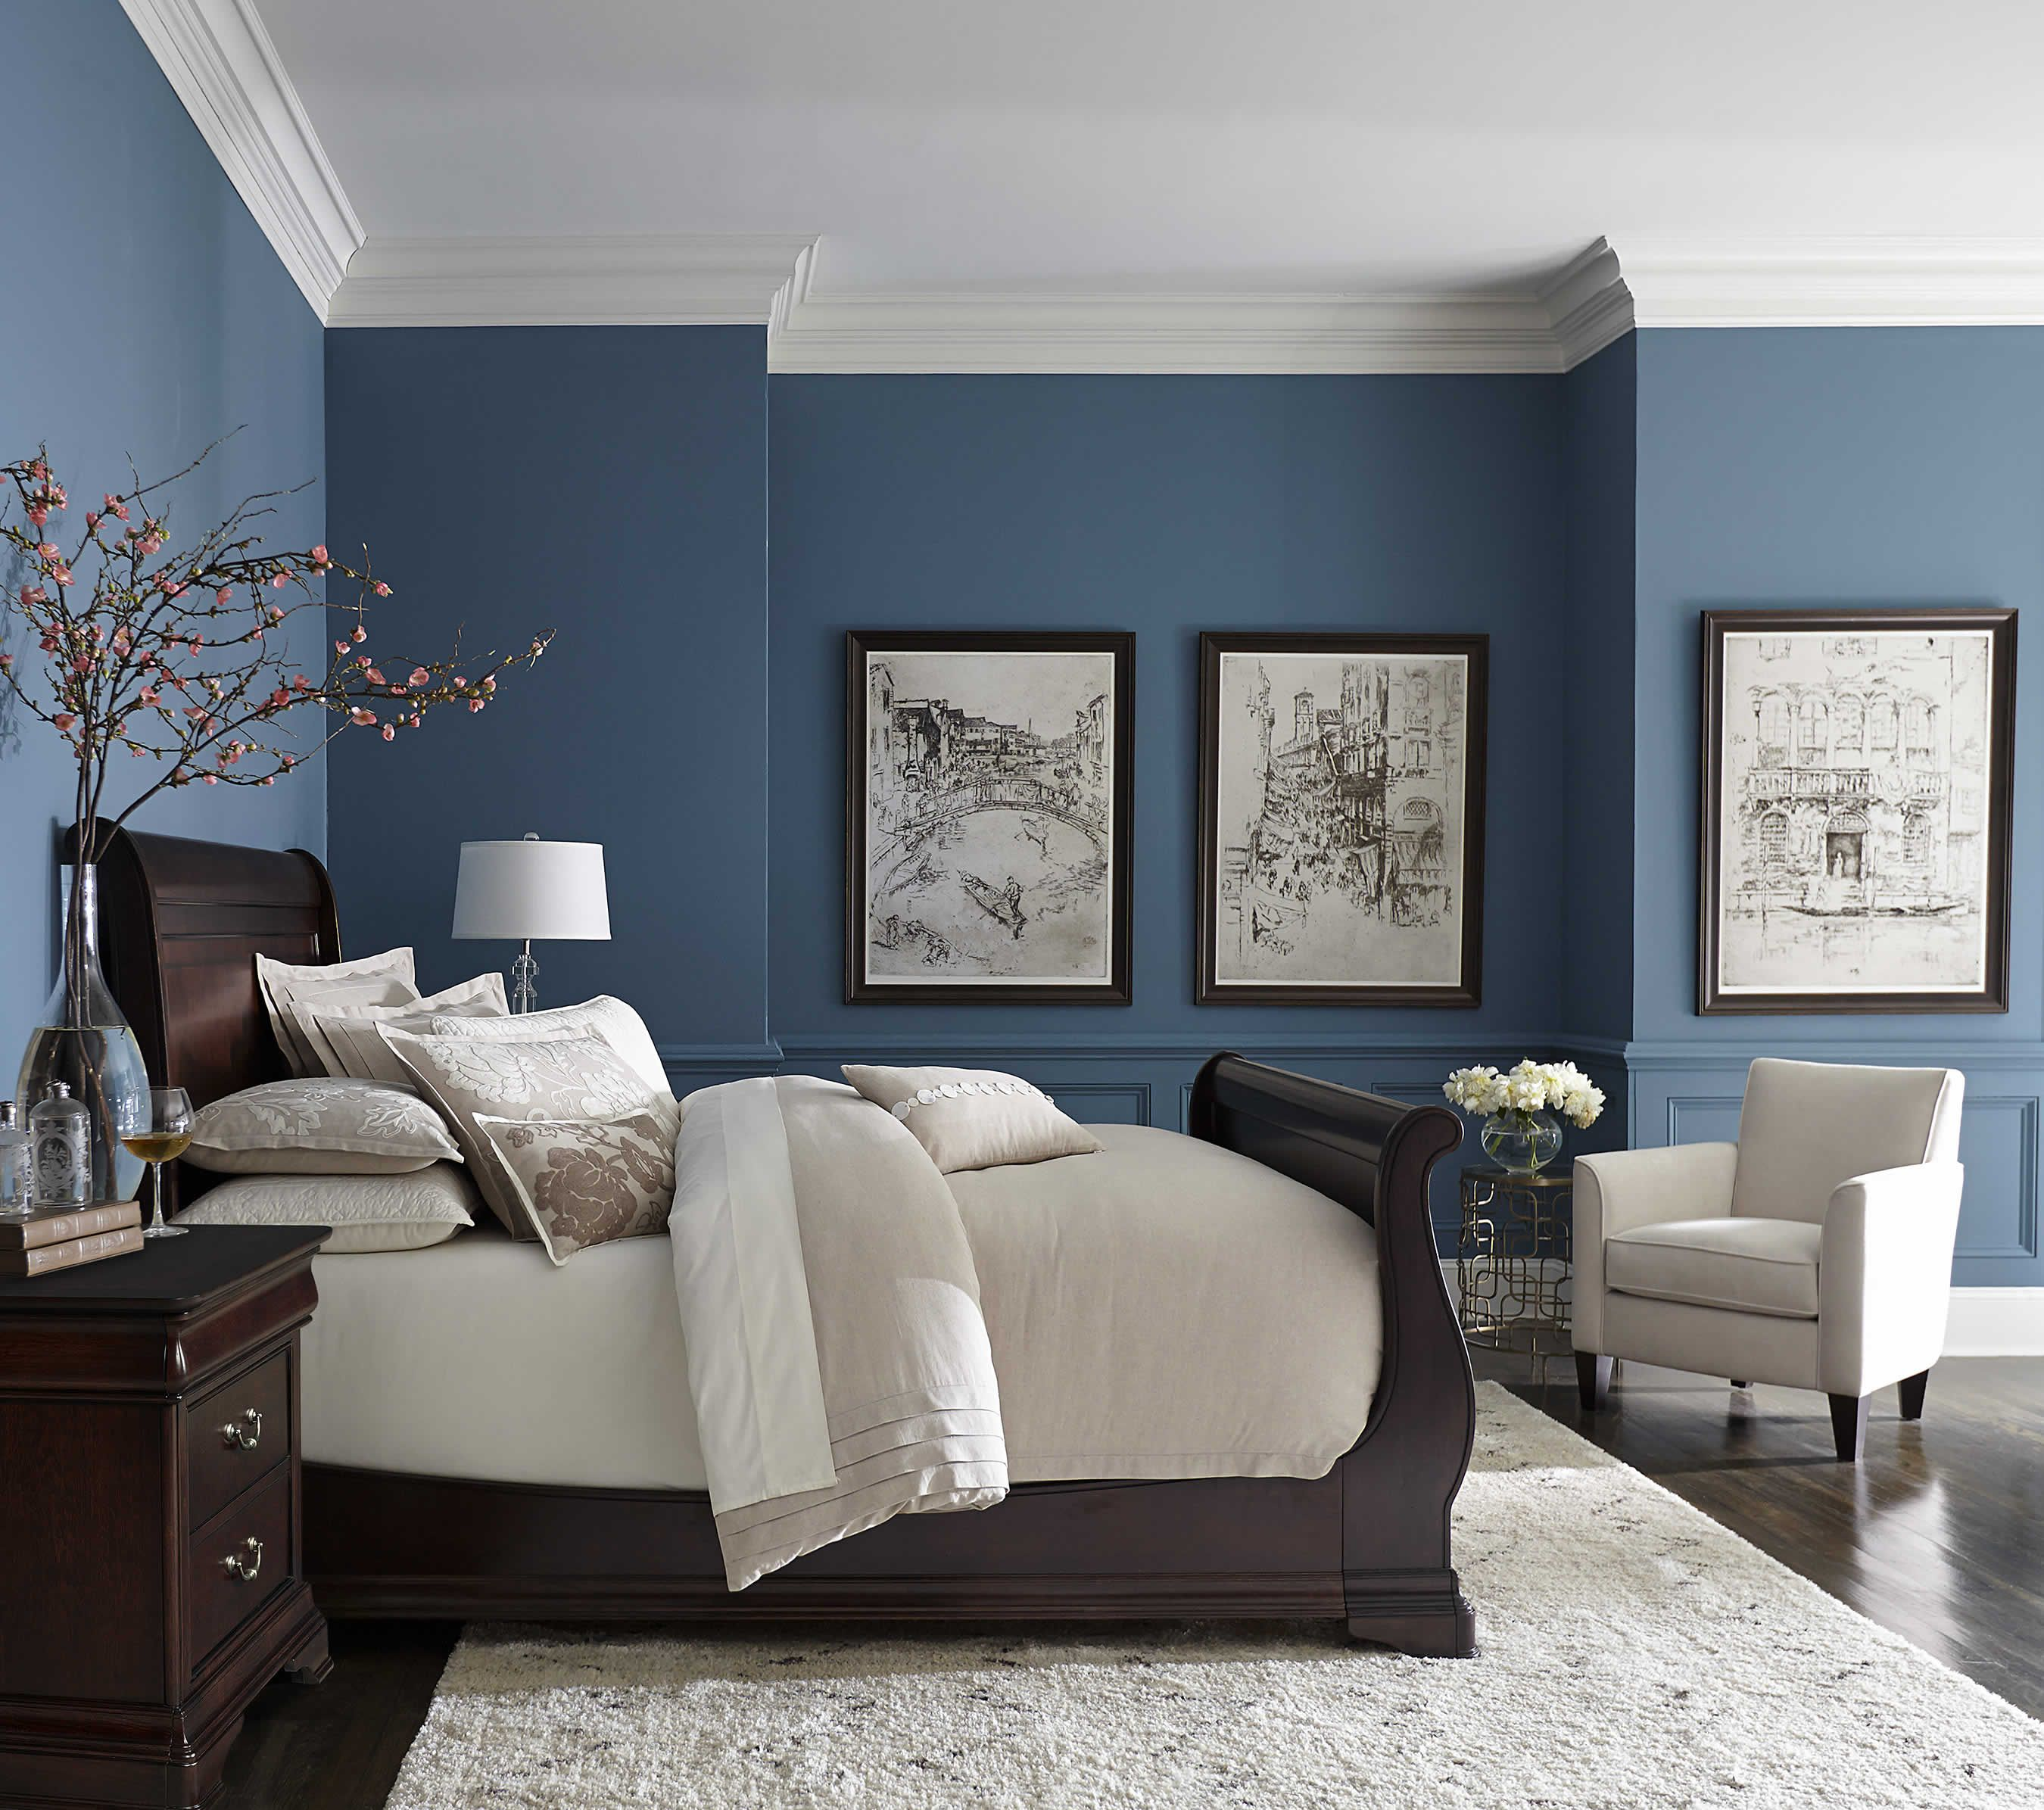 Bedroom Carpet Inspiration Bedroom Colour Shade Male Bedroom Paint Ideas Red Bedroom Cupboards: Pretty Blue Color With White Crown Molding